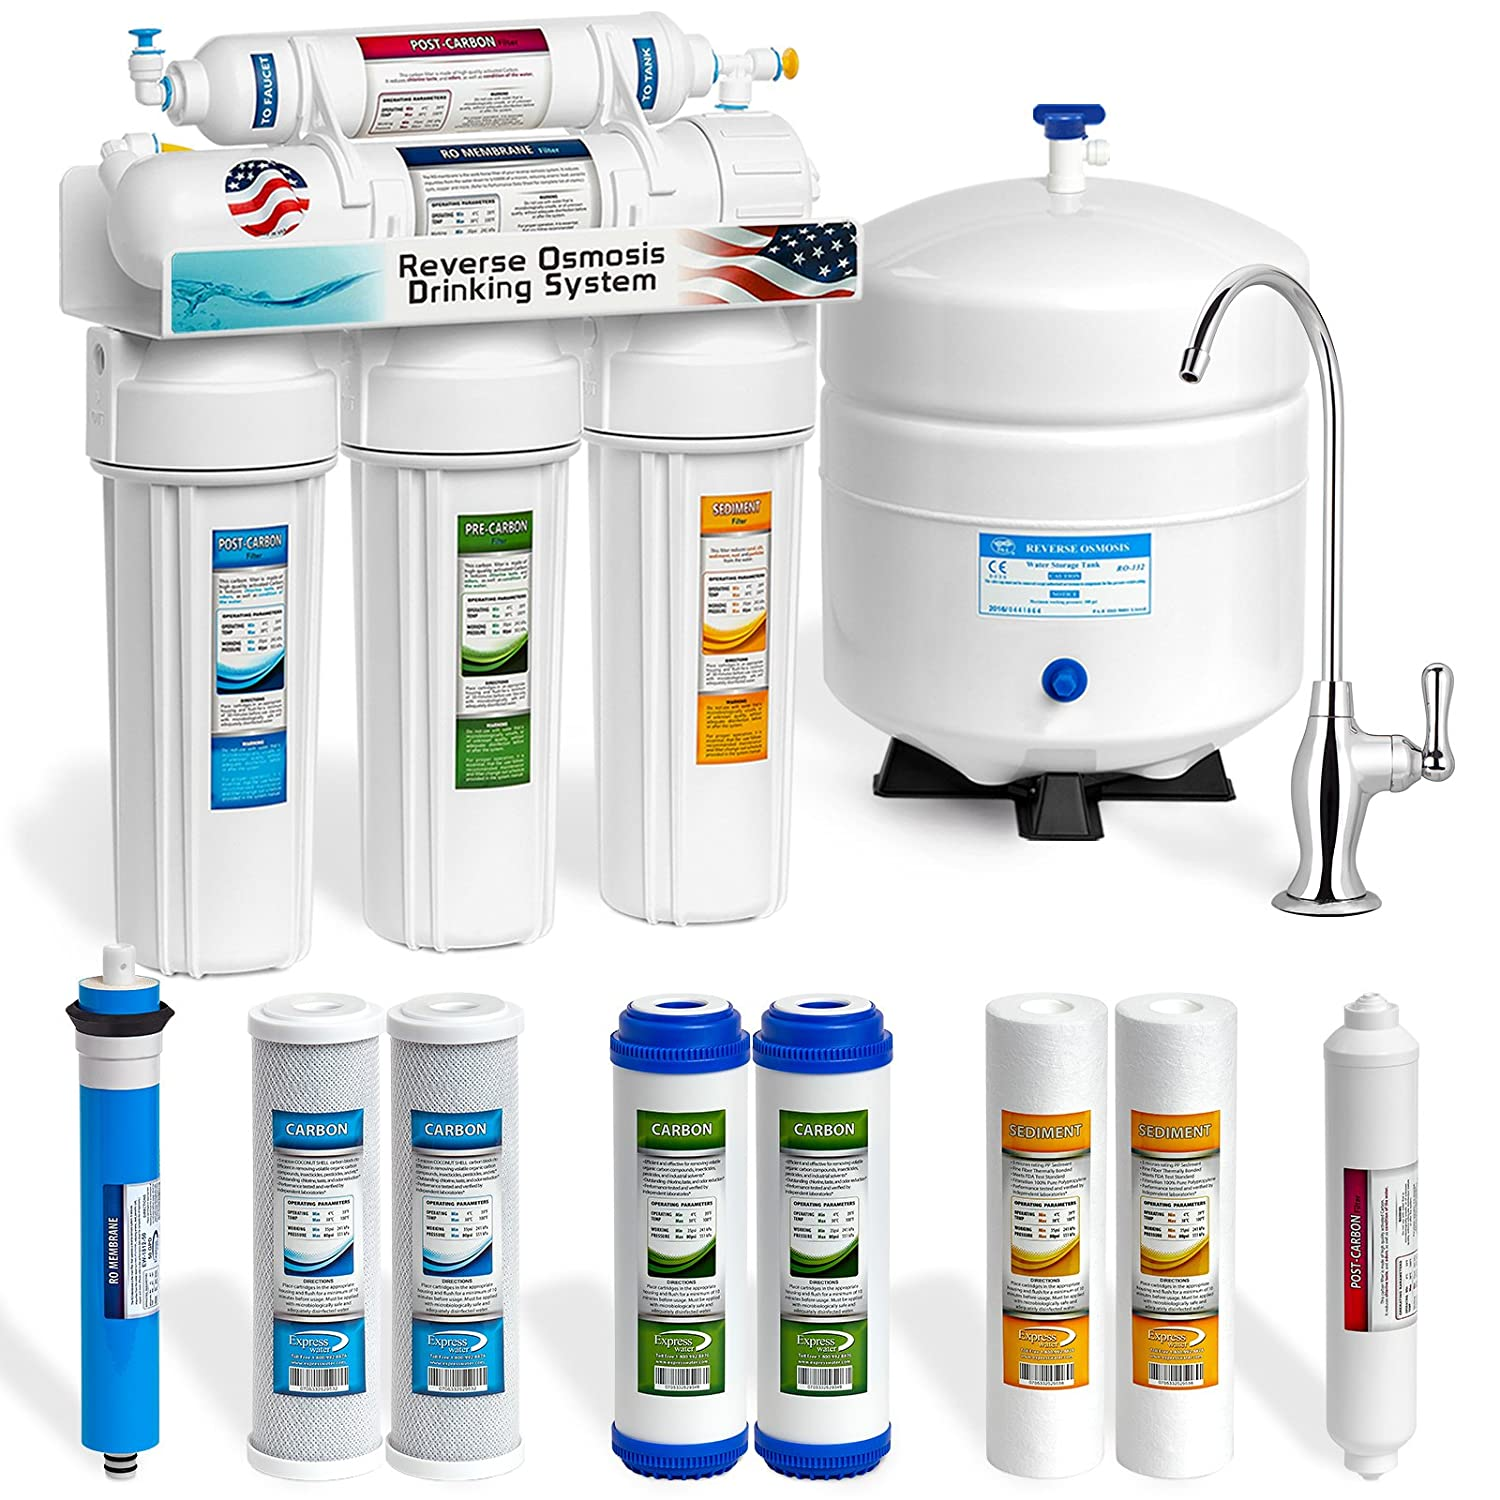 Express Water RO5DX 5 Stage Undersink Reverse Osmosis Drinking